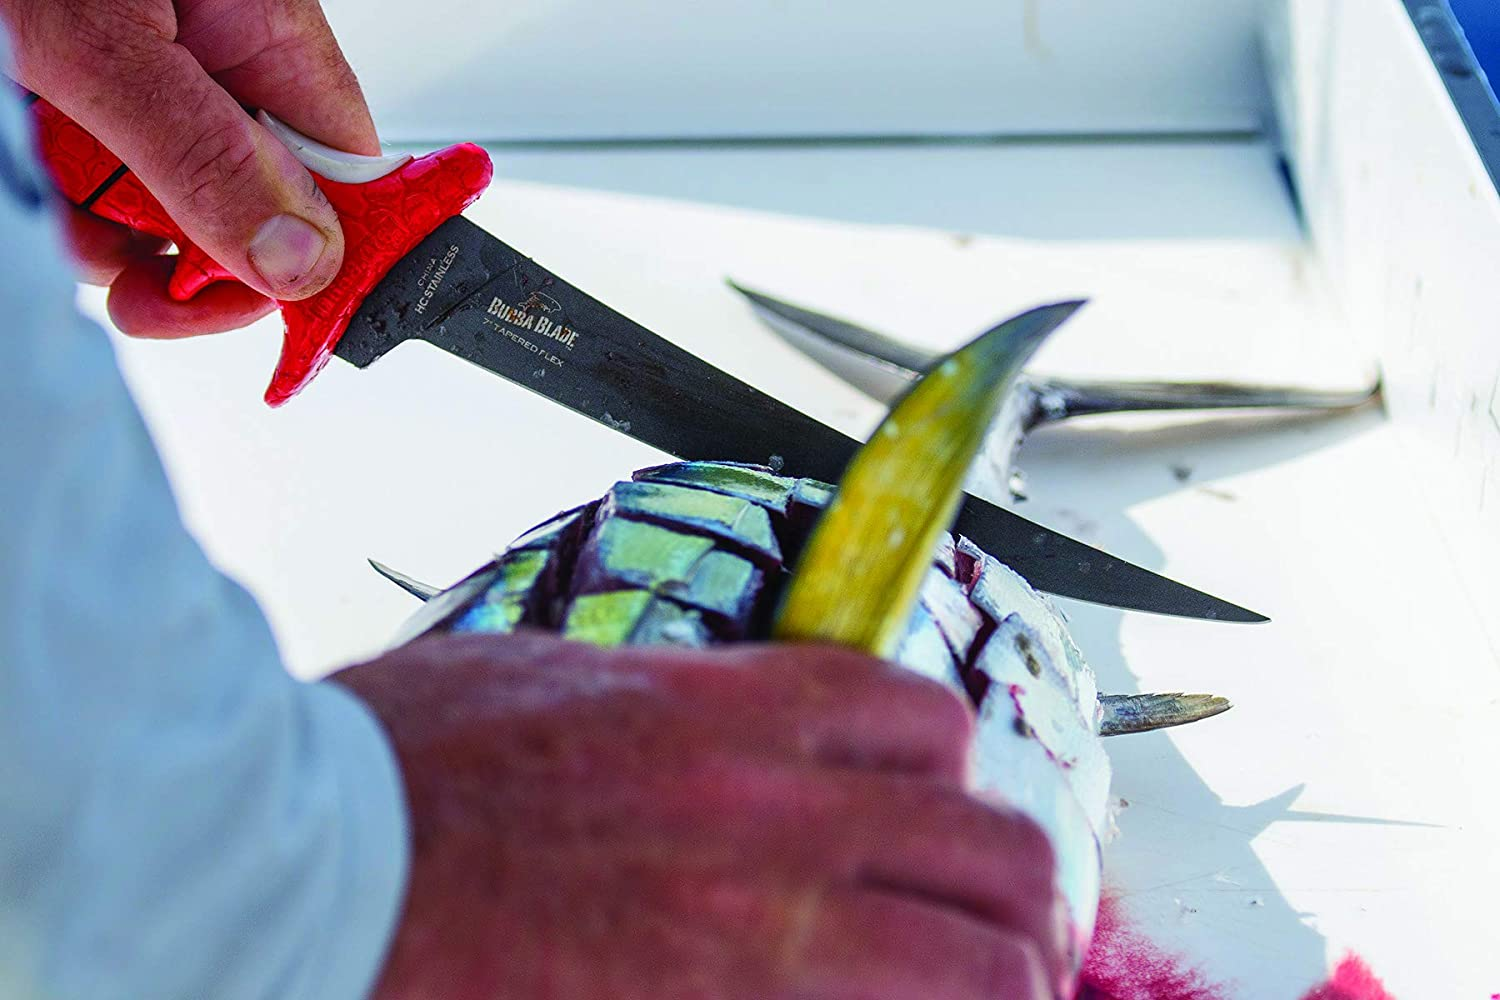 BUBBA 7 Inch Tapered Flex Fillet Fishing Knife